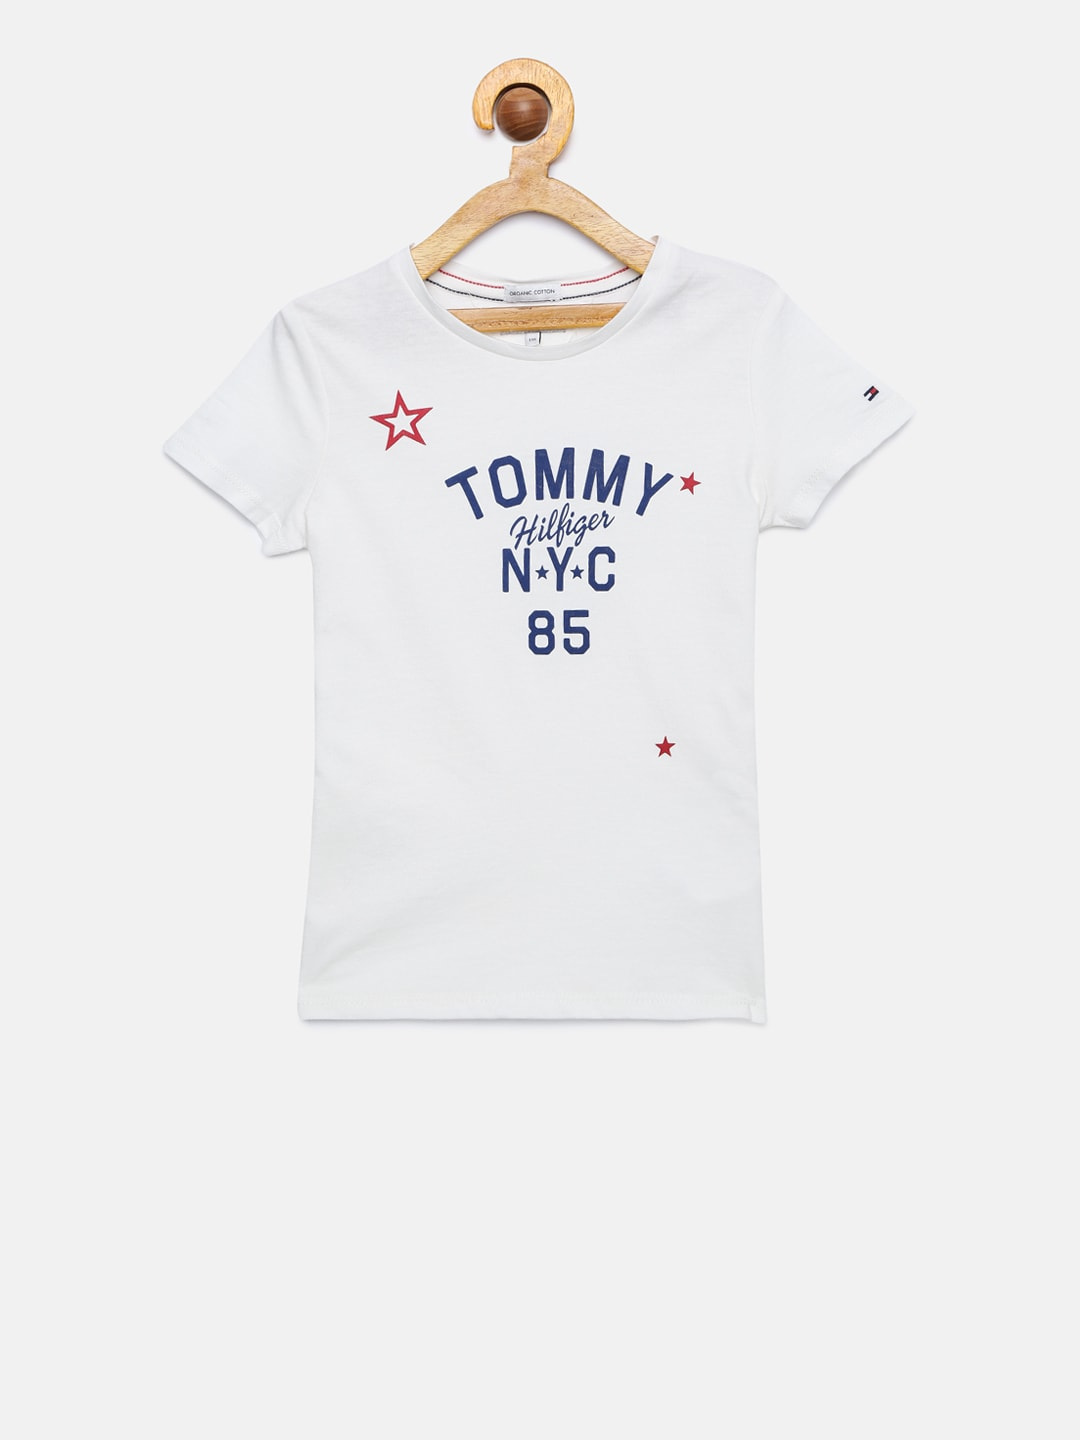 2908a9ab Tops for Girls - Buy Girls Tops & Tshirts Online - Myntra